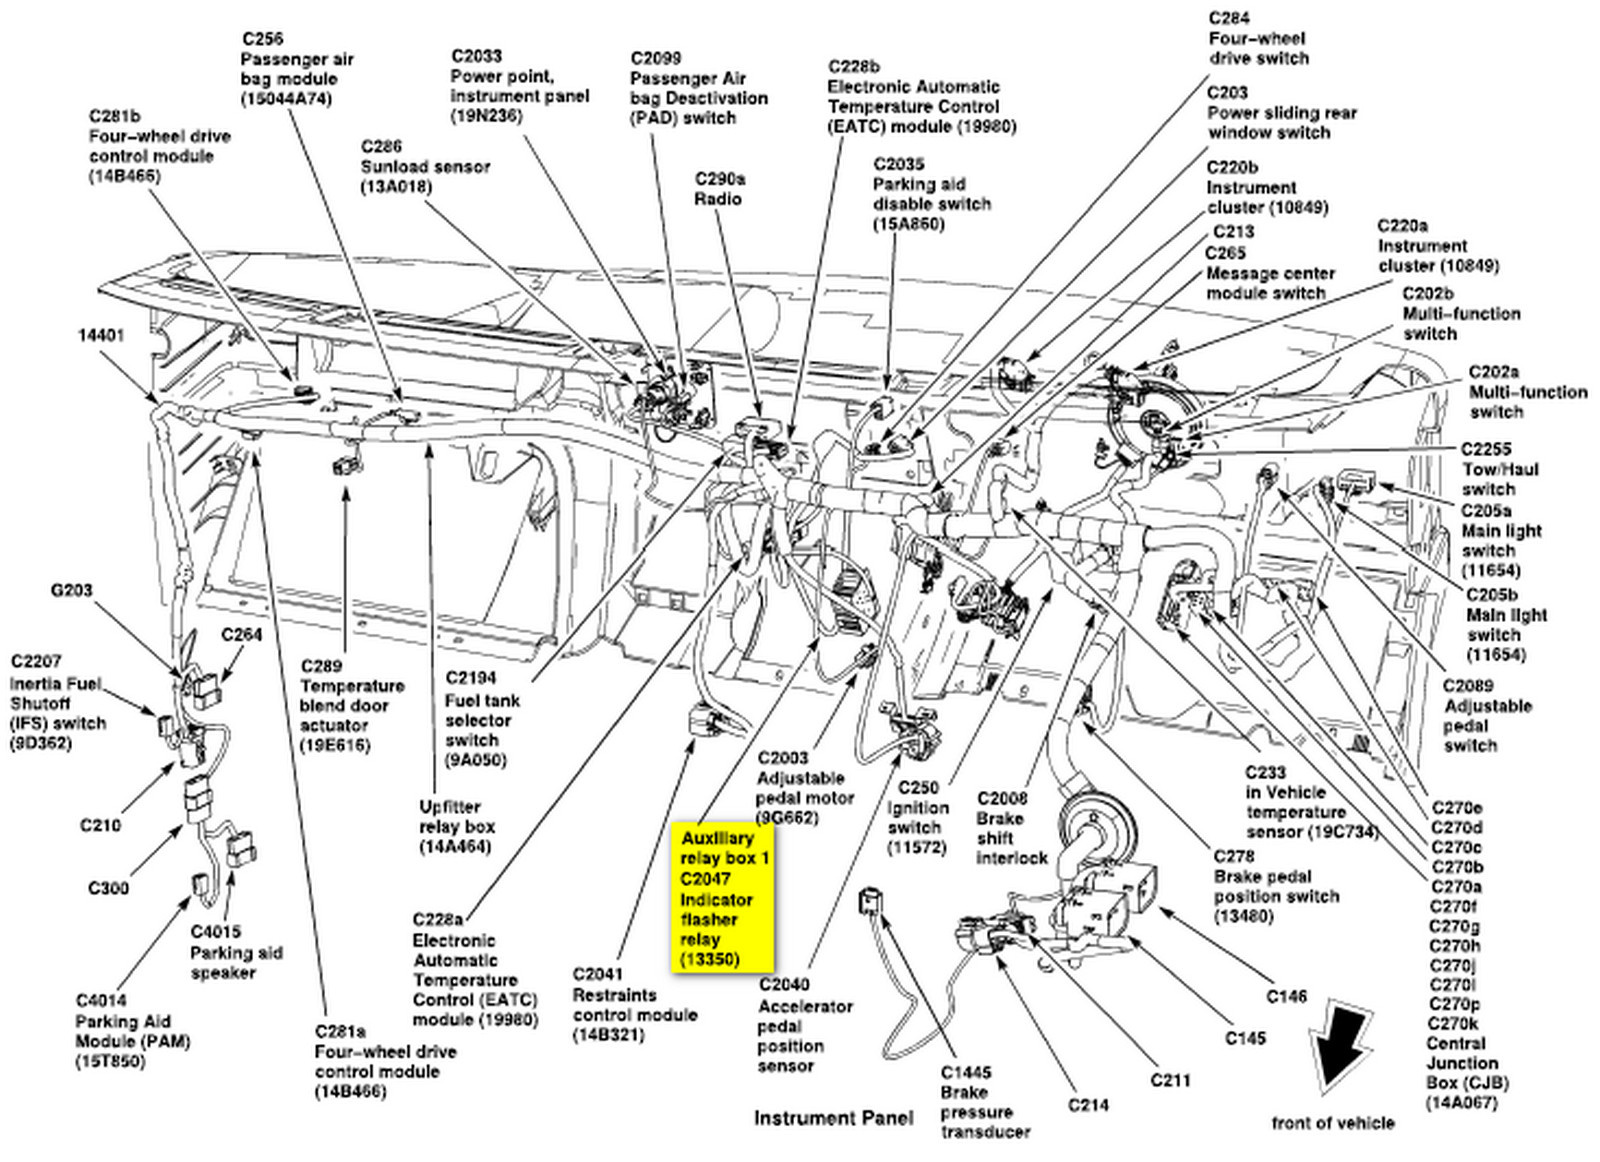 pic 3543451869035962991 1600x1200 wiring diagrams for ford e series vehicles readingrat net 2017 ford f550 wiring diagram at soozxer.org